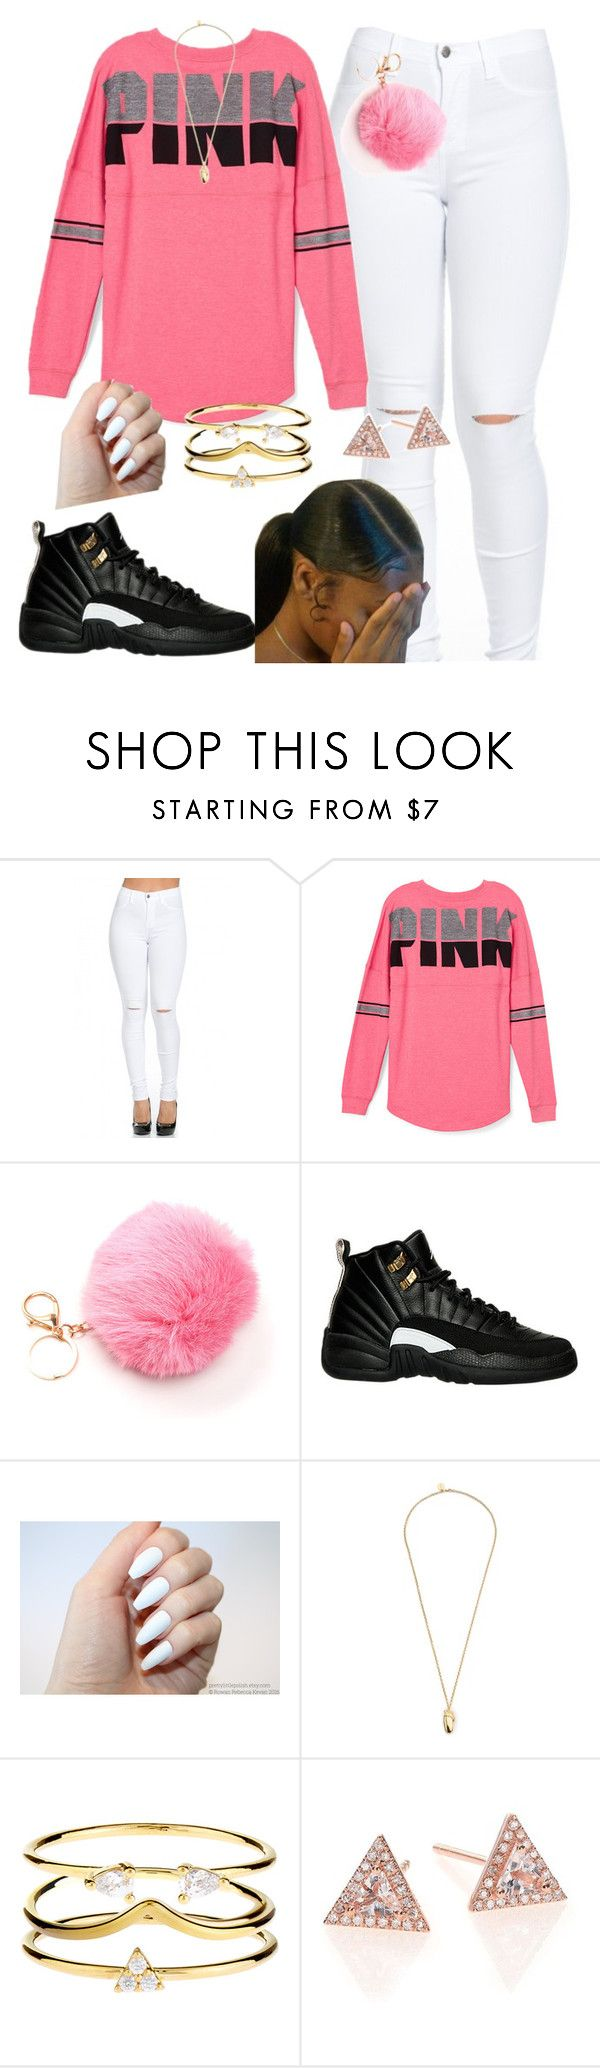 """""""Untitled #301"""" by queen-sugah900 ❤ liked on Polyvore featuring Victoria's Secret PINK, Pembe Club, Accessorize and EF Collection"""